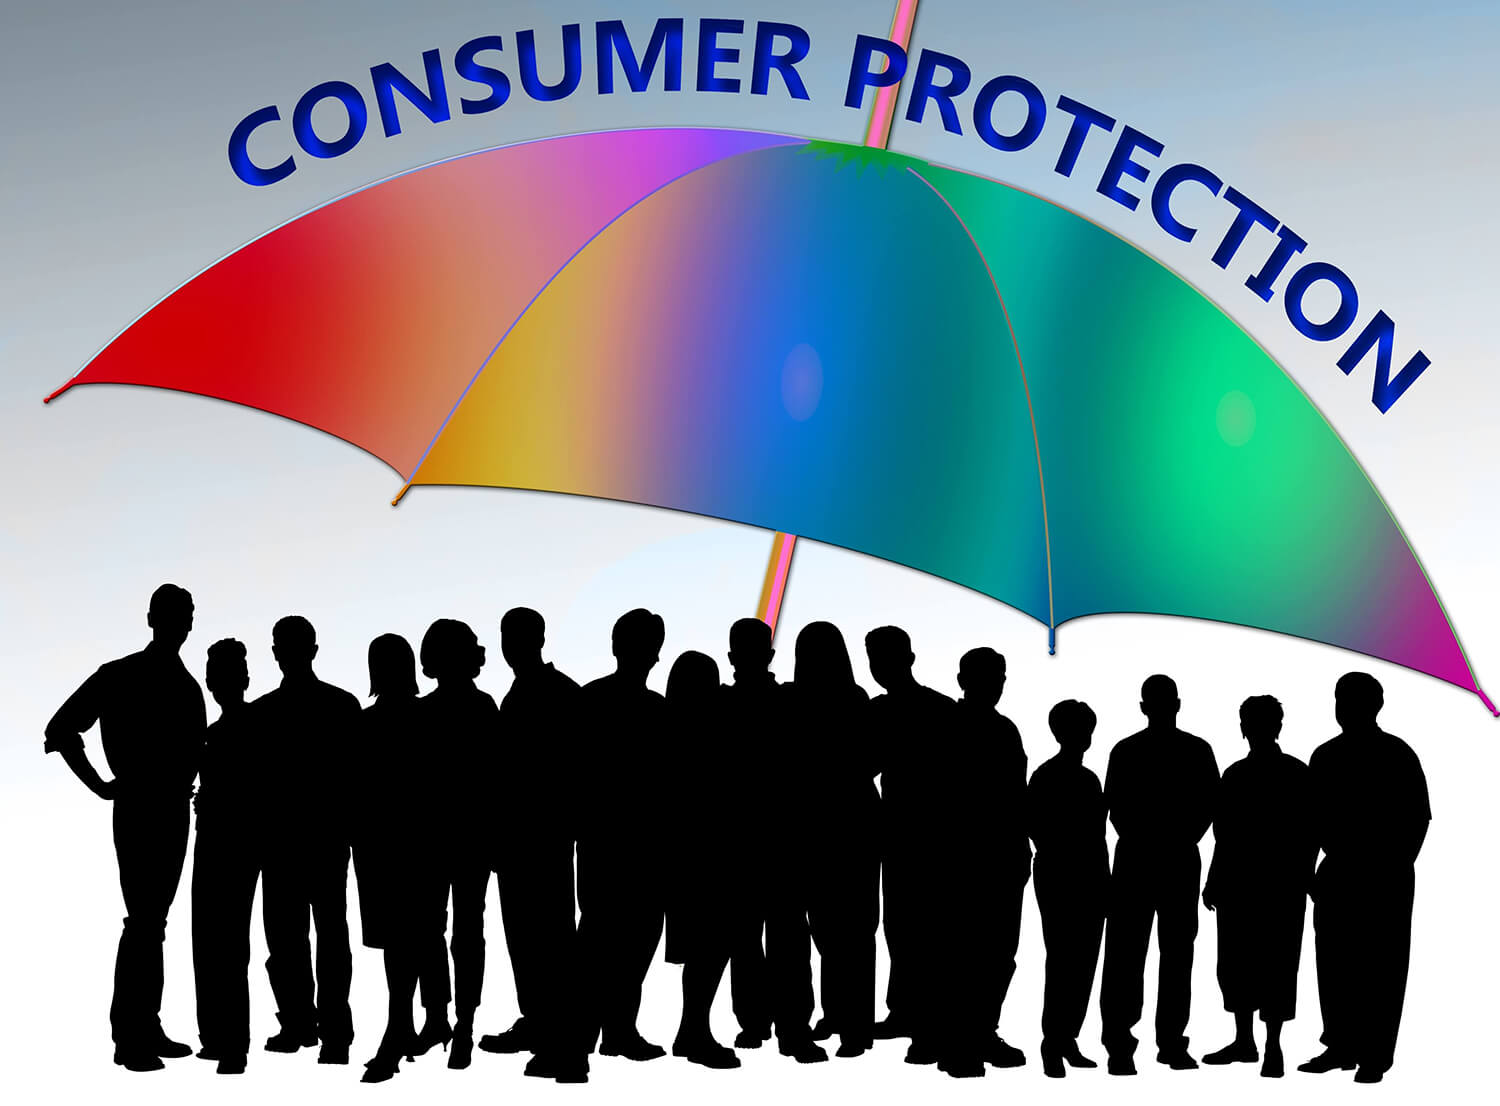 Consumer Protection Bill, 2019